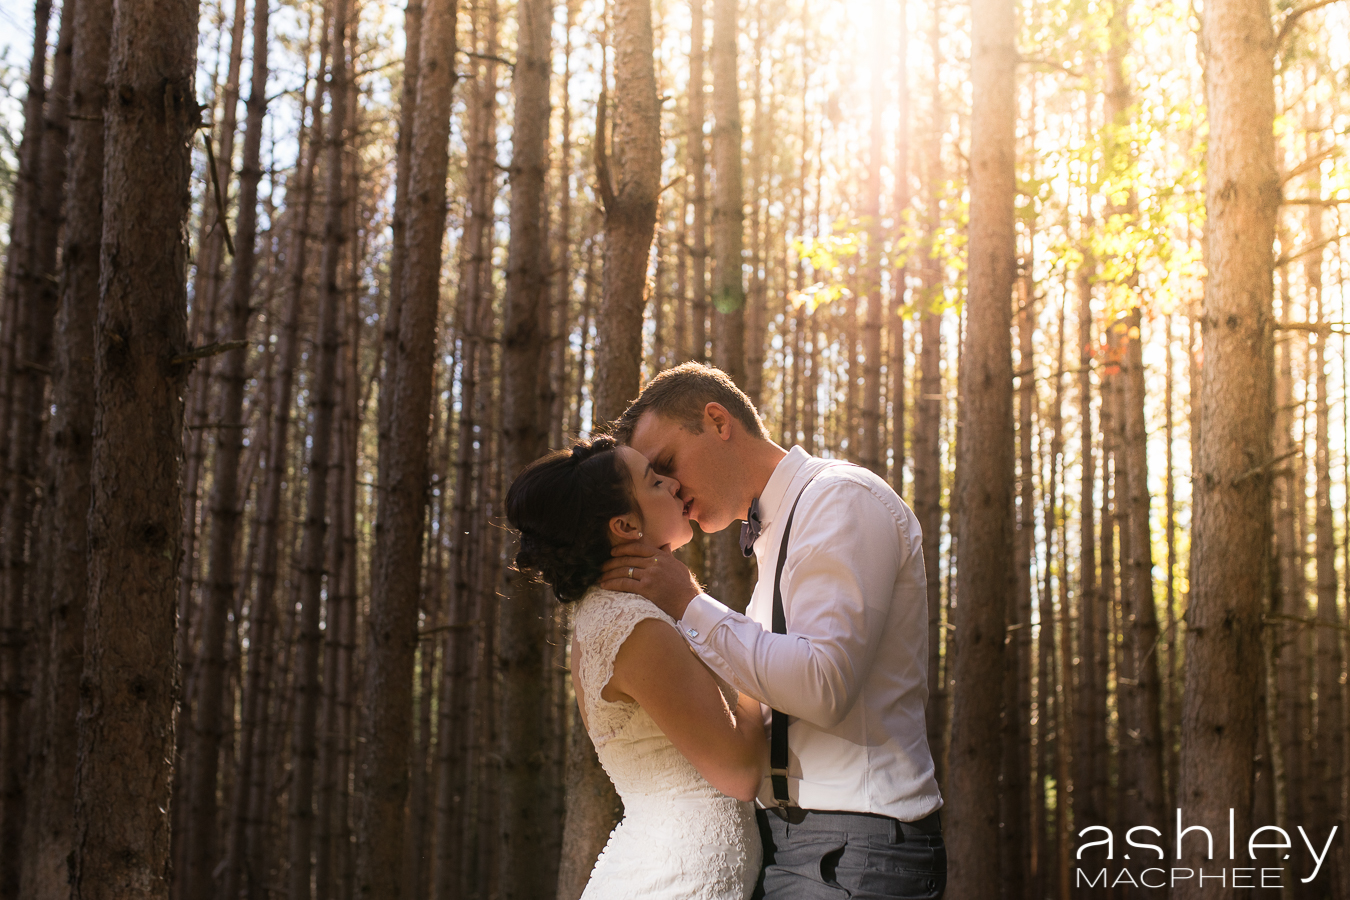 Ashley MacPhee Photography Mont Tremblant Wedding Photographer (40 of 92).jpg